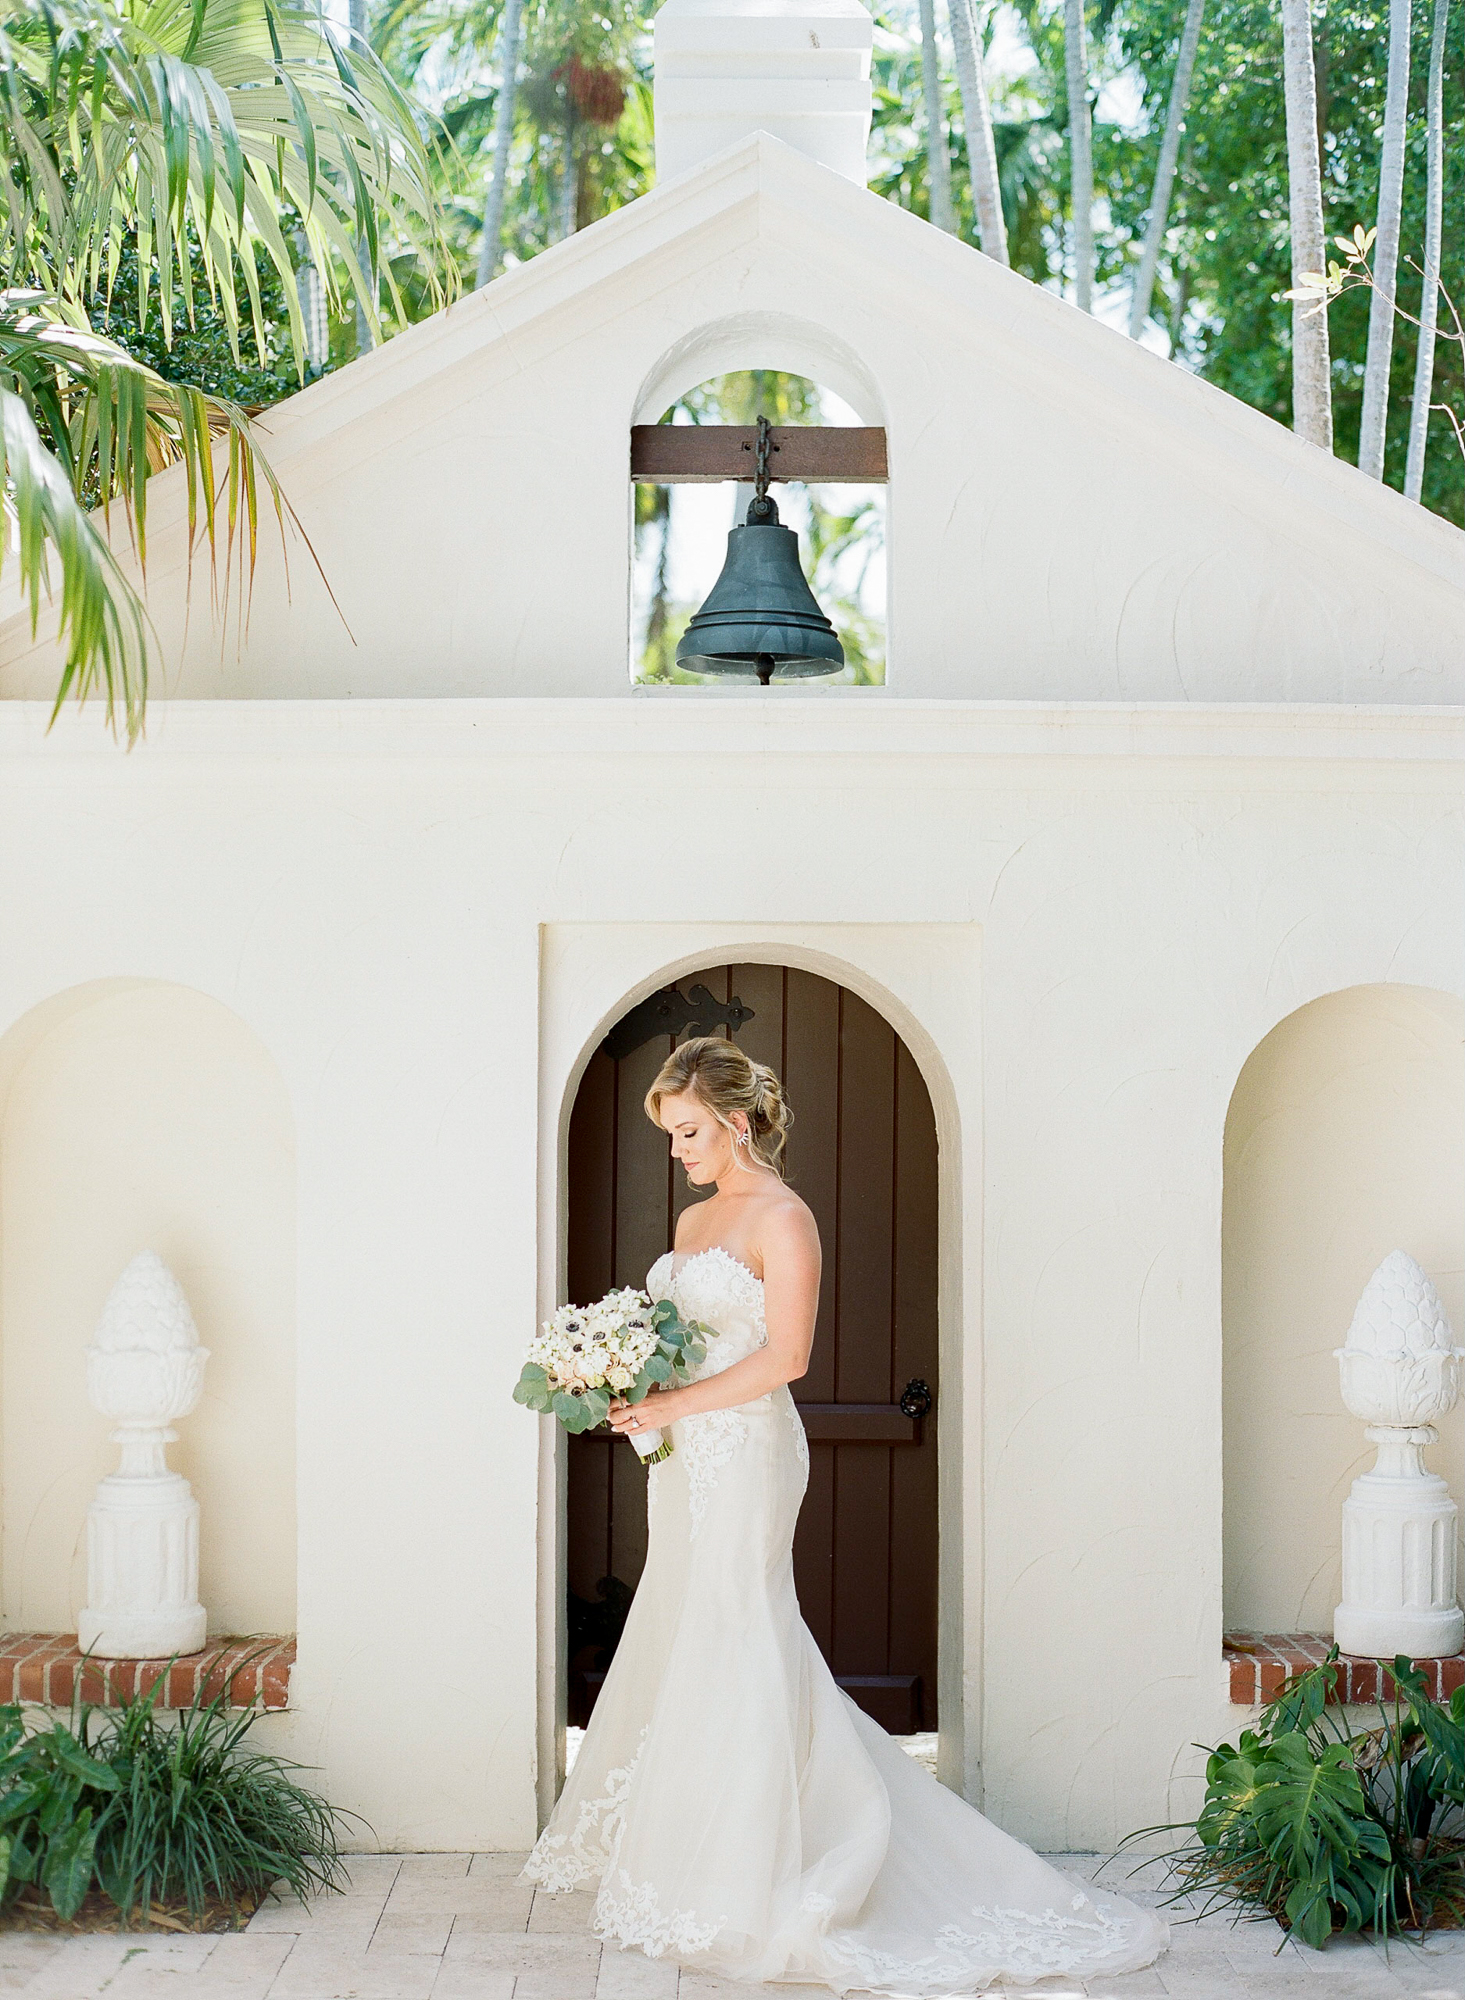 Bride stands in front of door and looks down at her bouquet wearing a strapless gown.